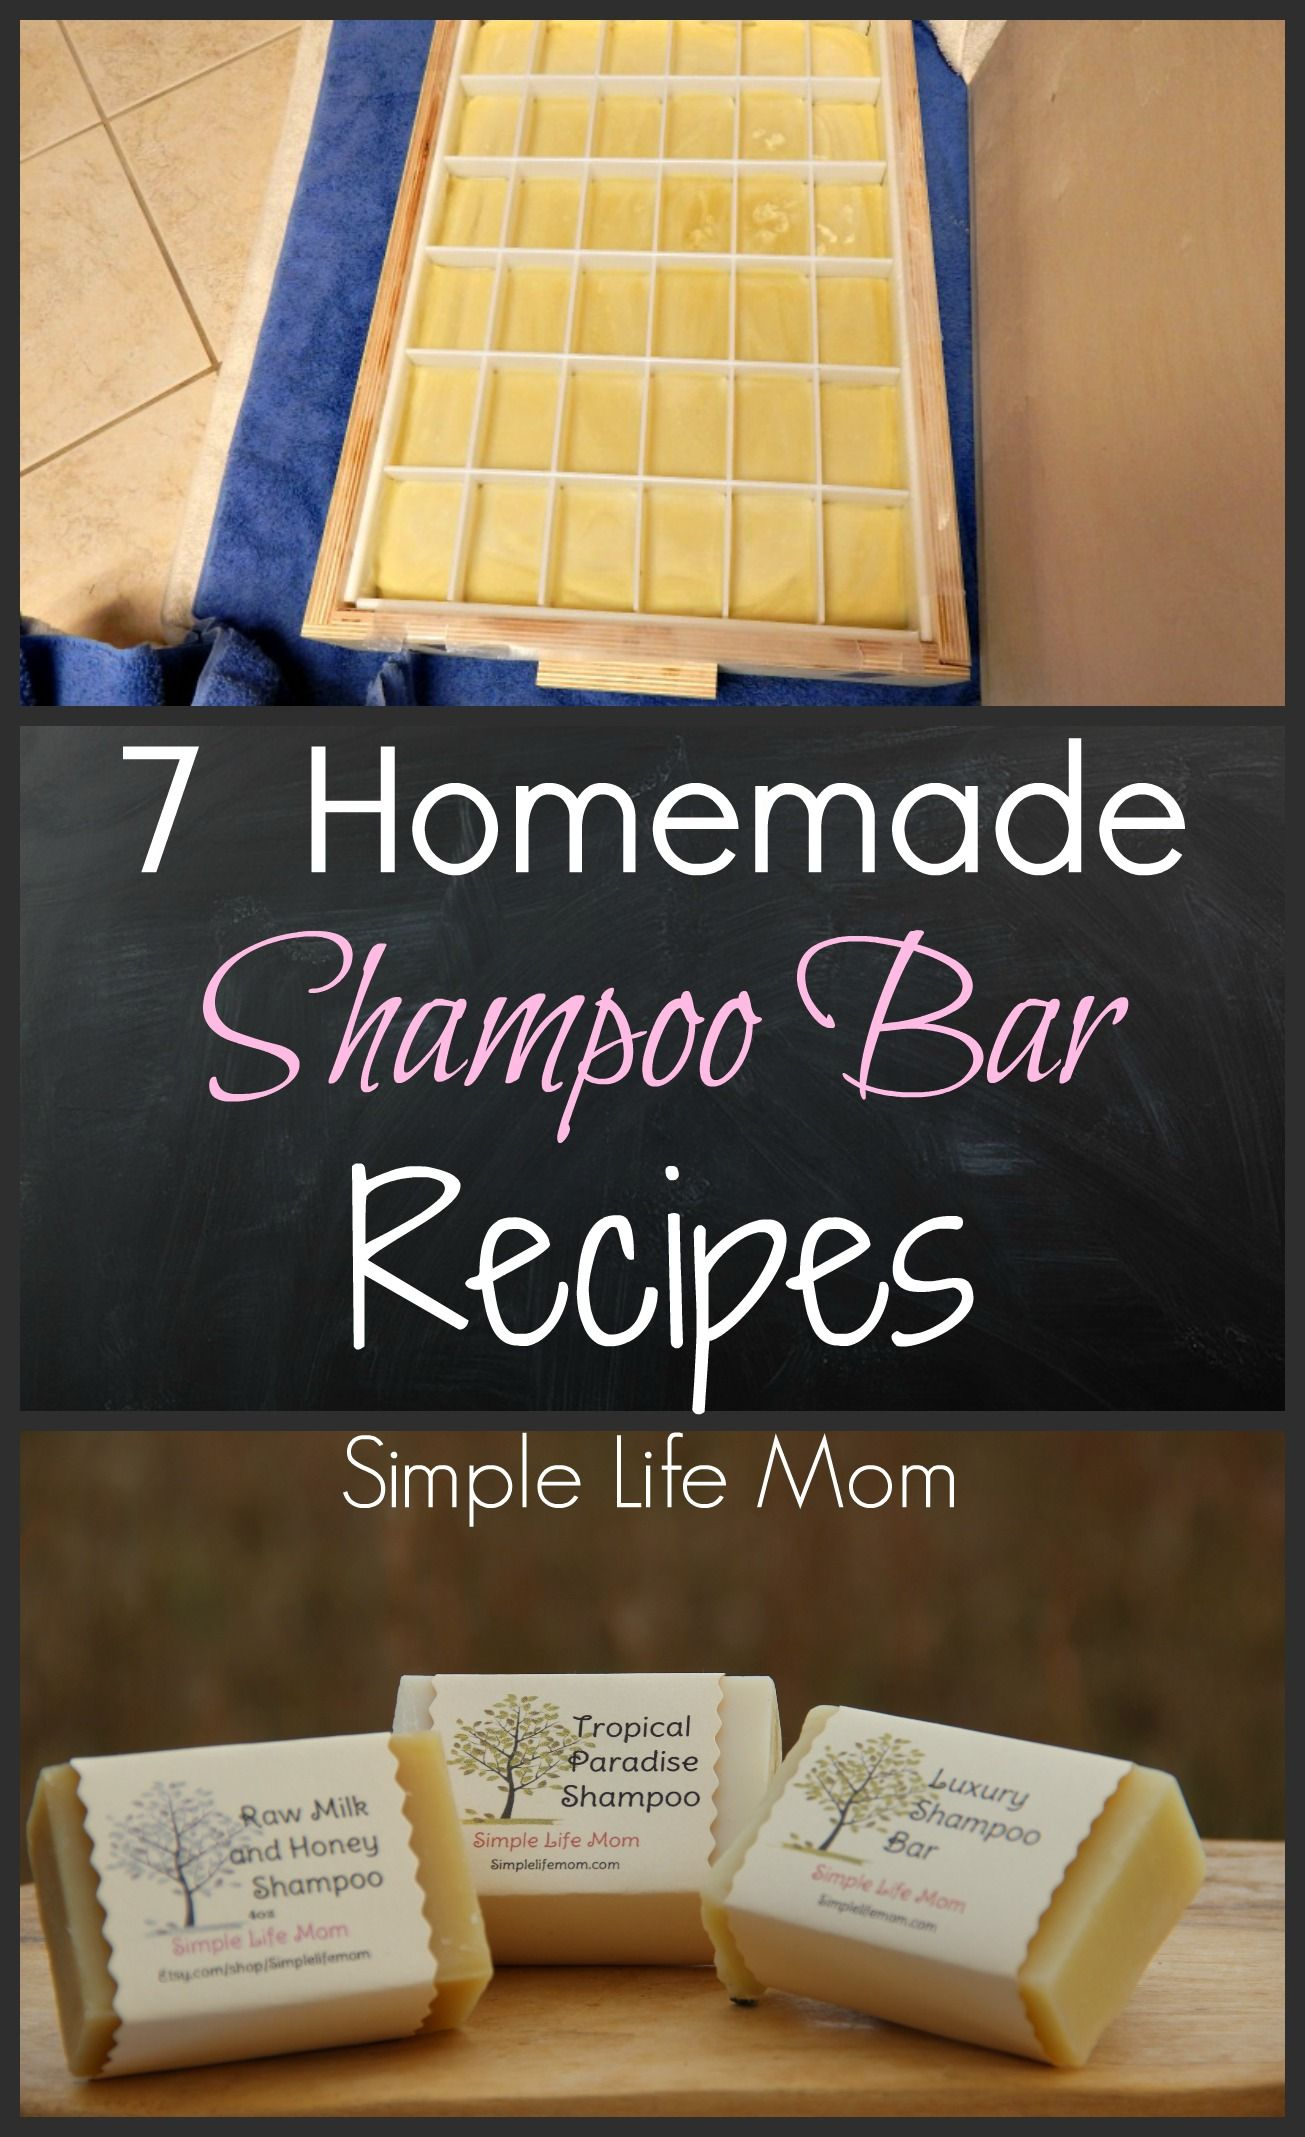 7 homemade shampoo bar recipes kosmetik leben ohne plastik und seifen. Black Bedroom Furniture Sets. Home Design Ideas